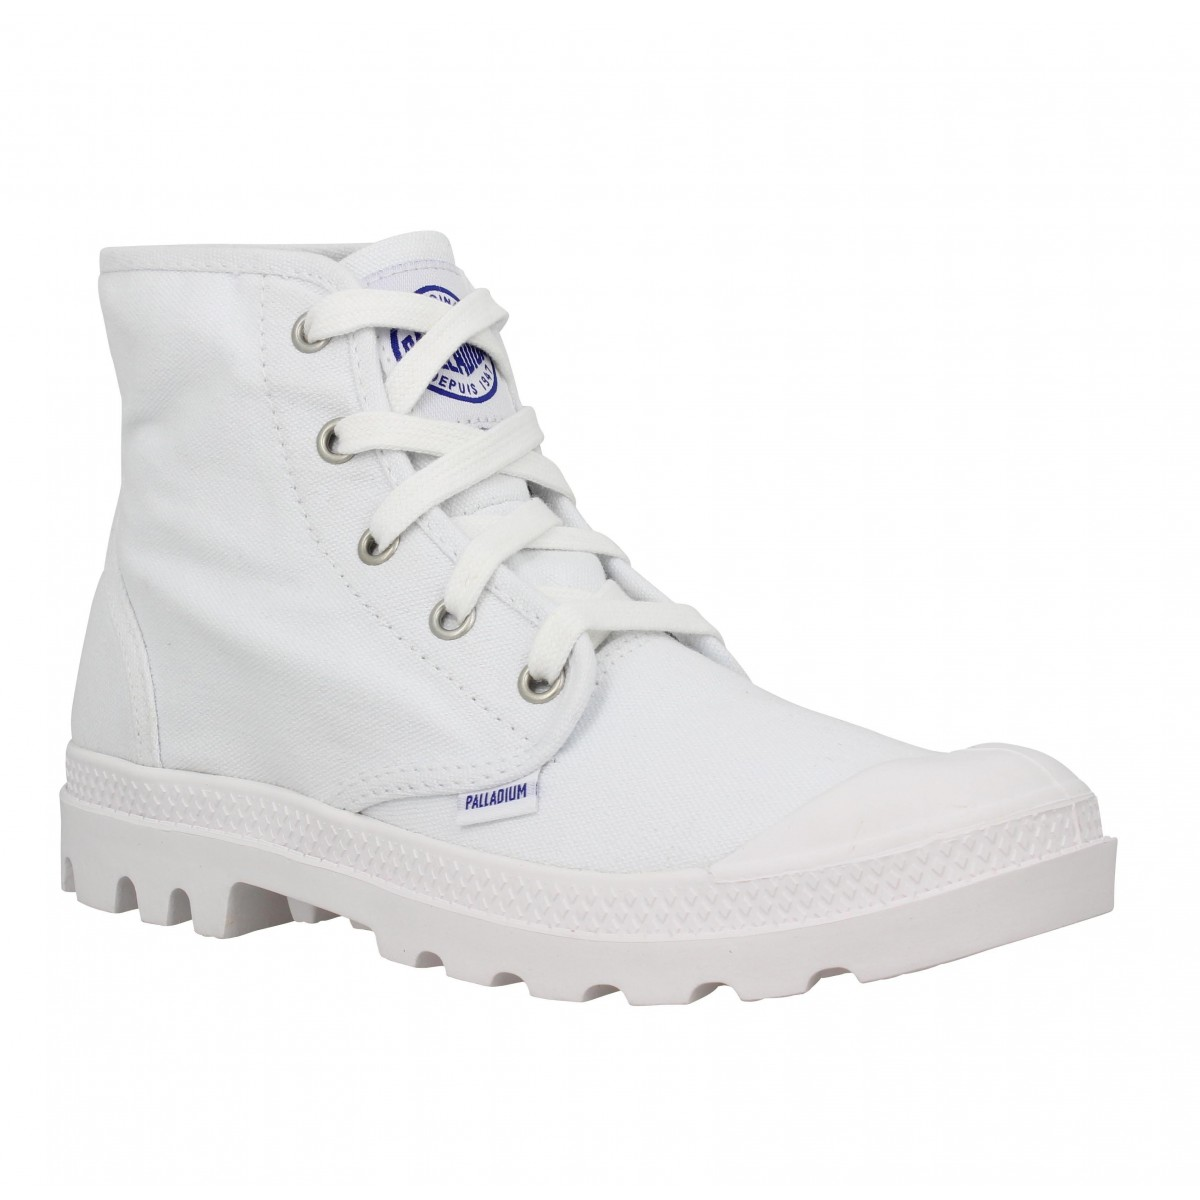 Bottines PALLADIUM US Pampa Hi toile Femme Blanc